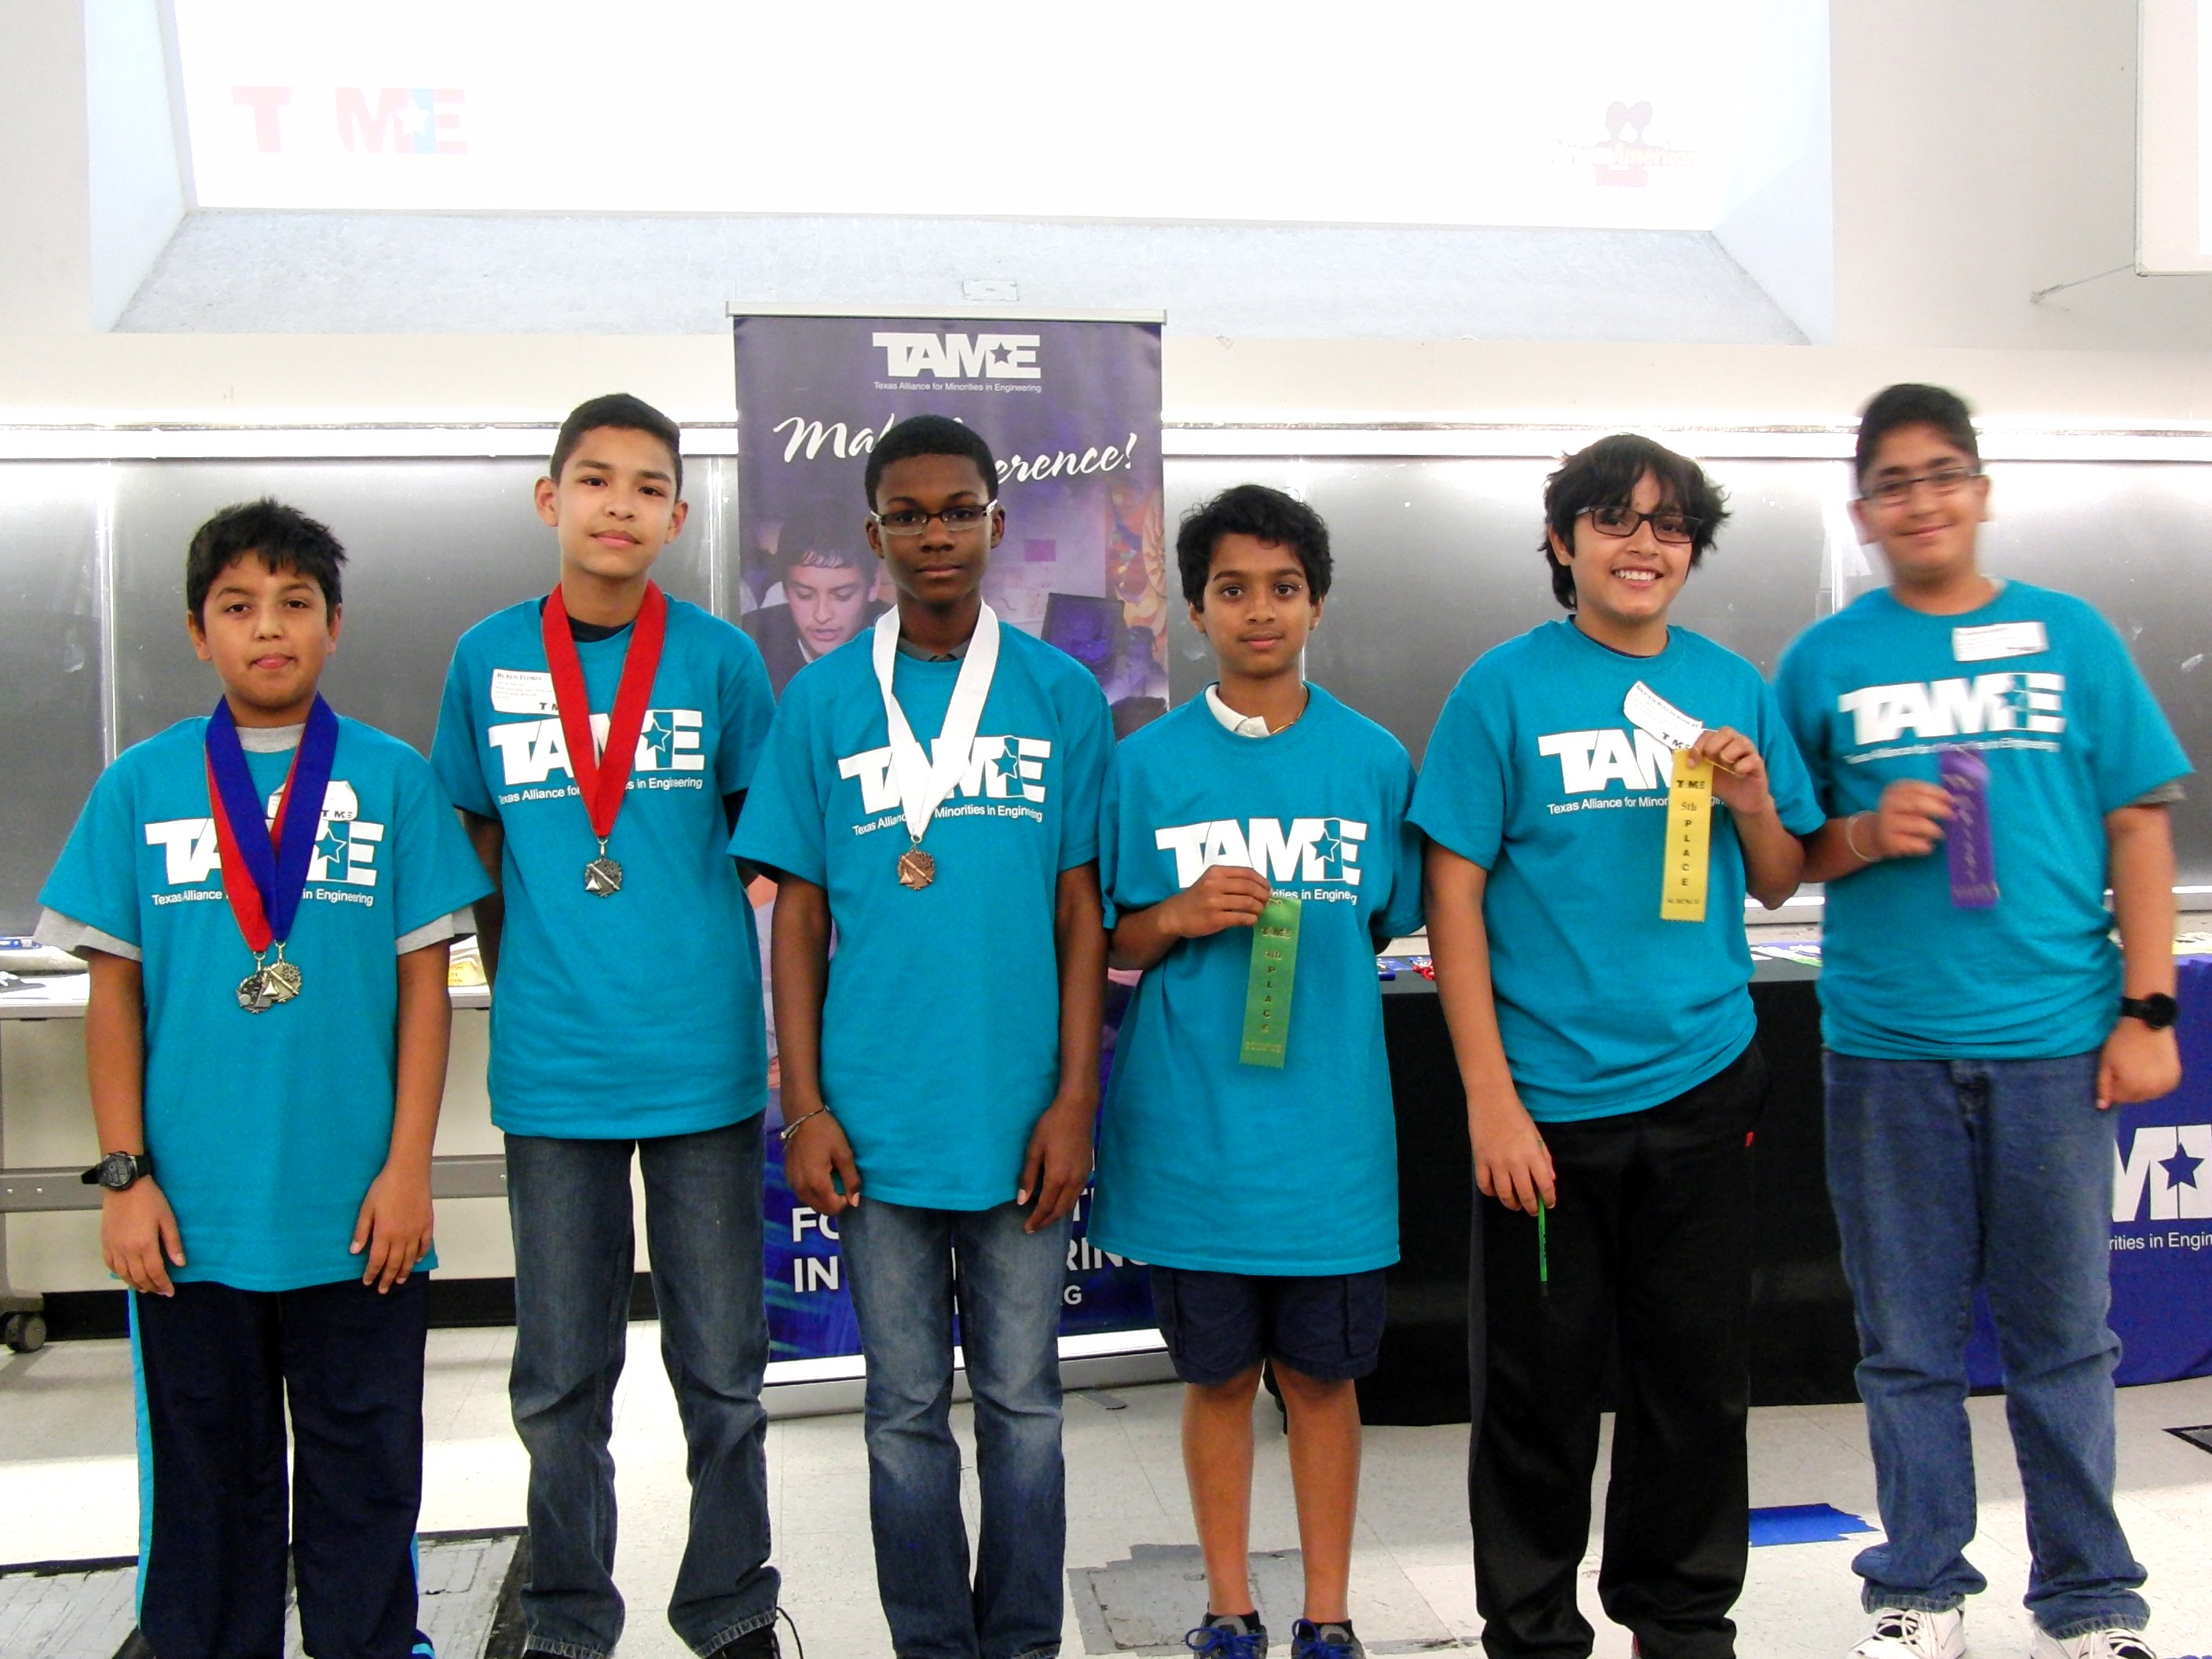 The 2016 TAME Capital Area STEM Competition was hosted by the African American Youth Harvest Foundation at the University of Texas at Austin on Saturday February 20, 2016.